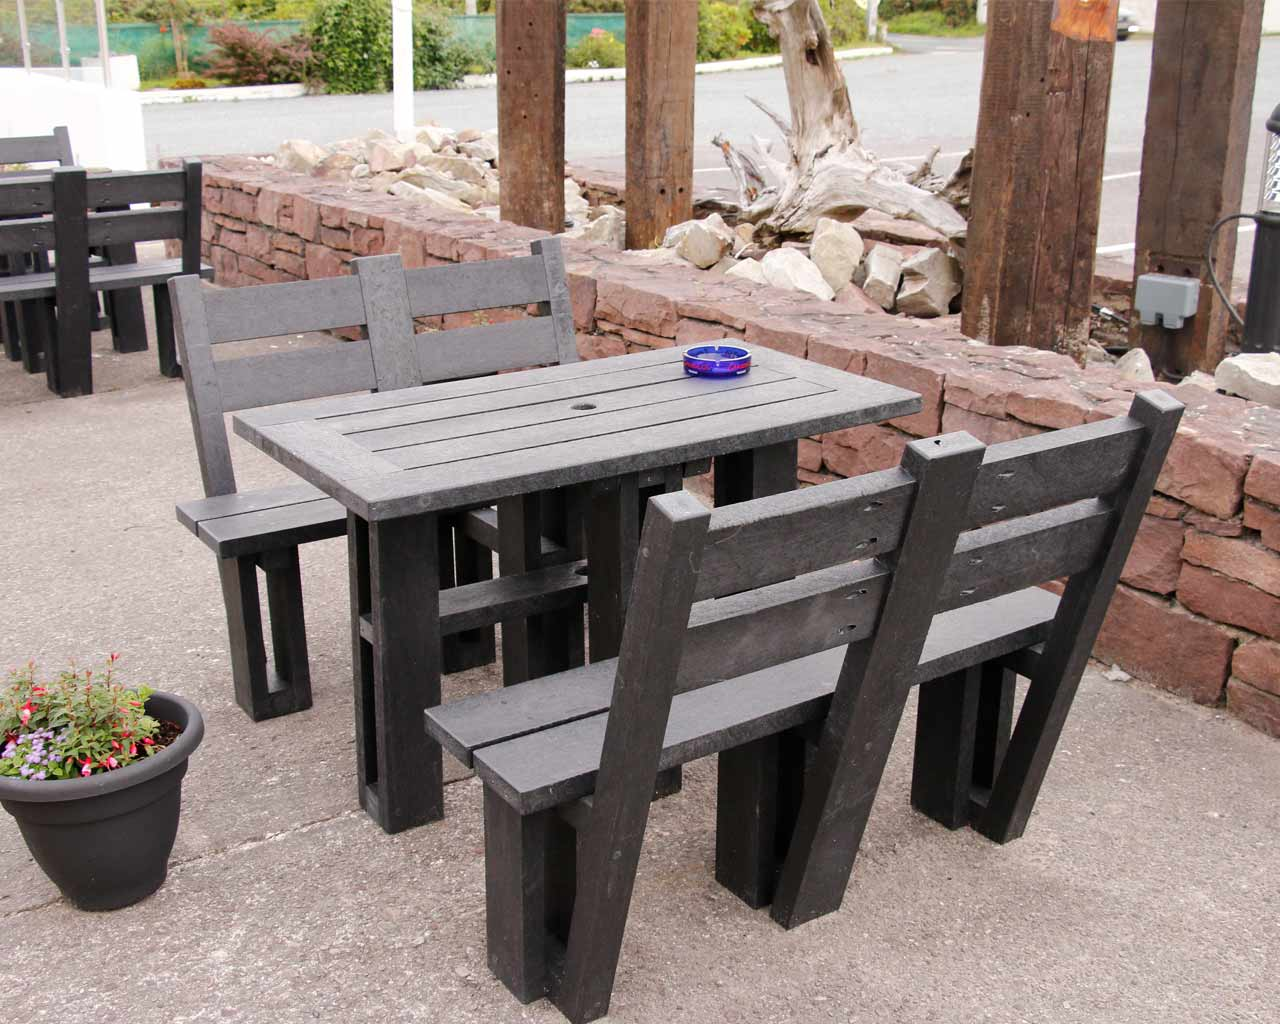 4 sided picnic table with back